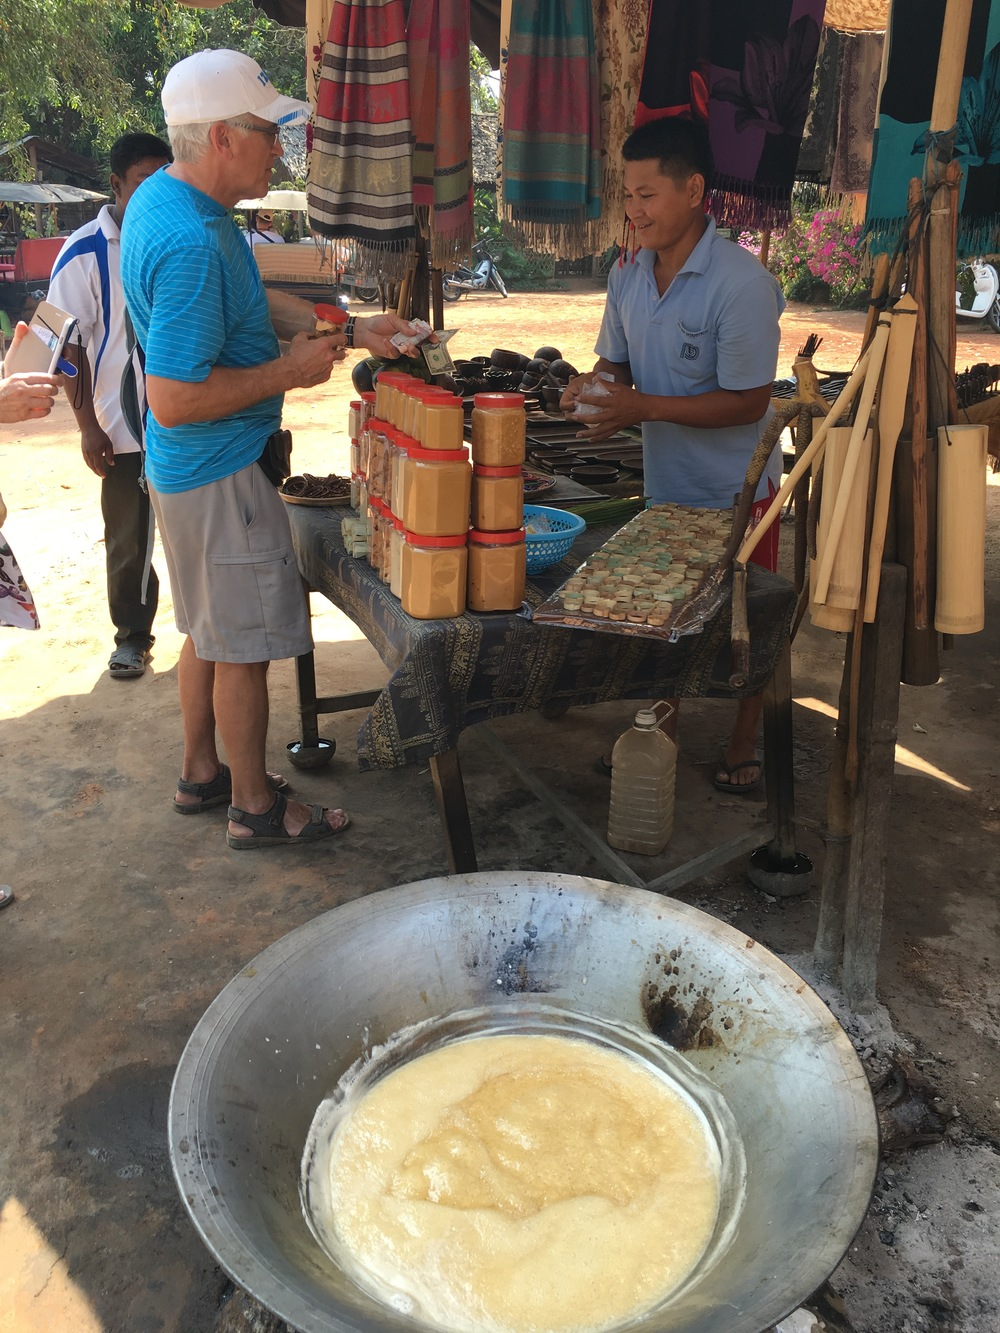 Dad paying for some Khmer candies